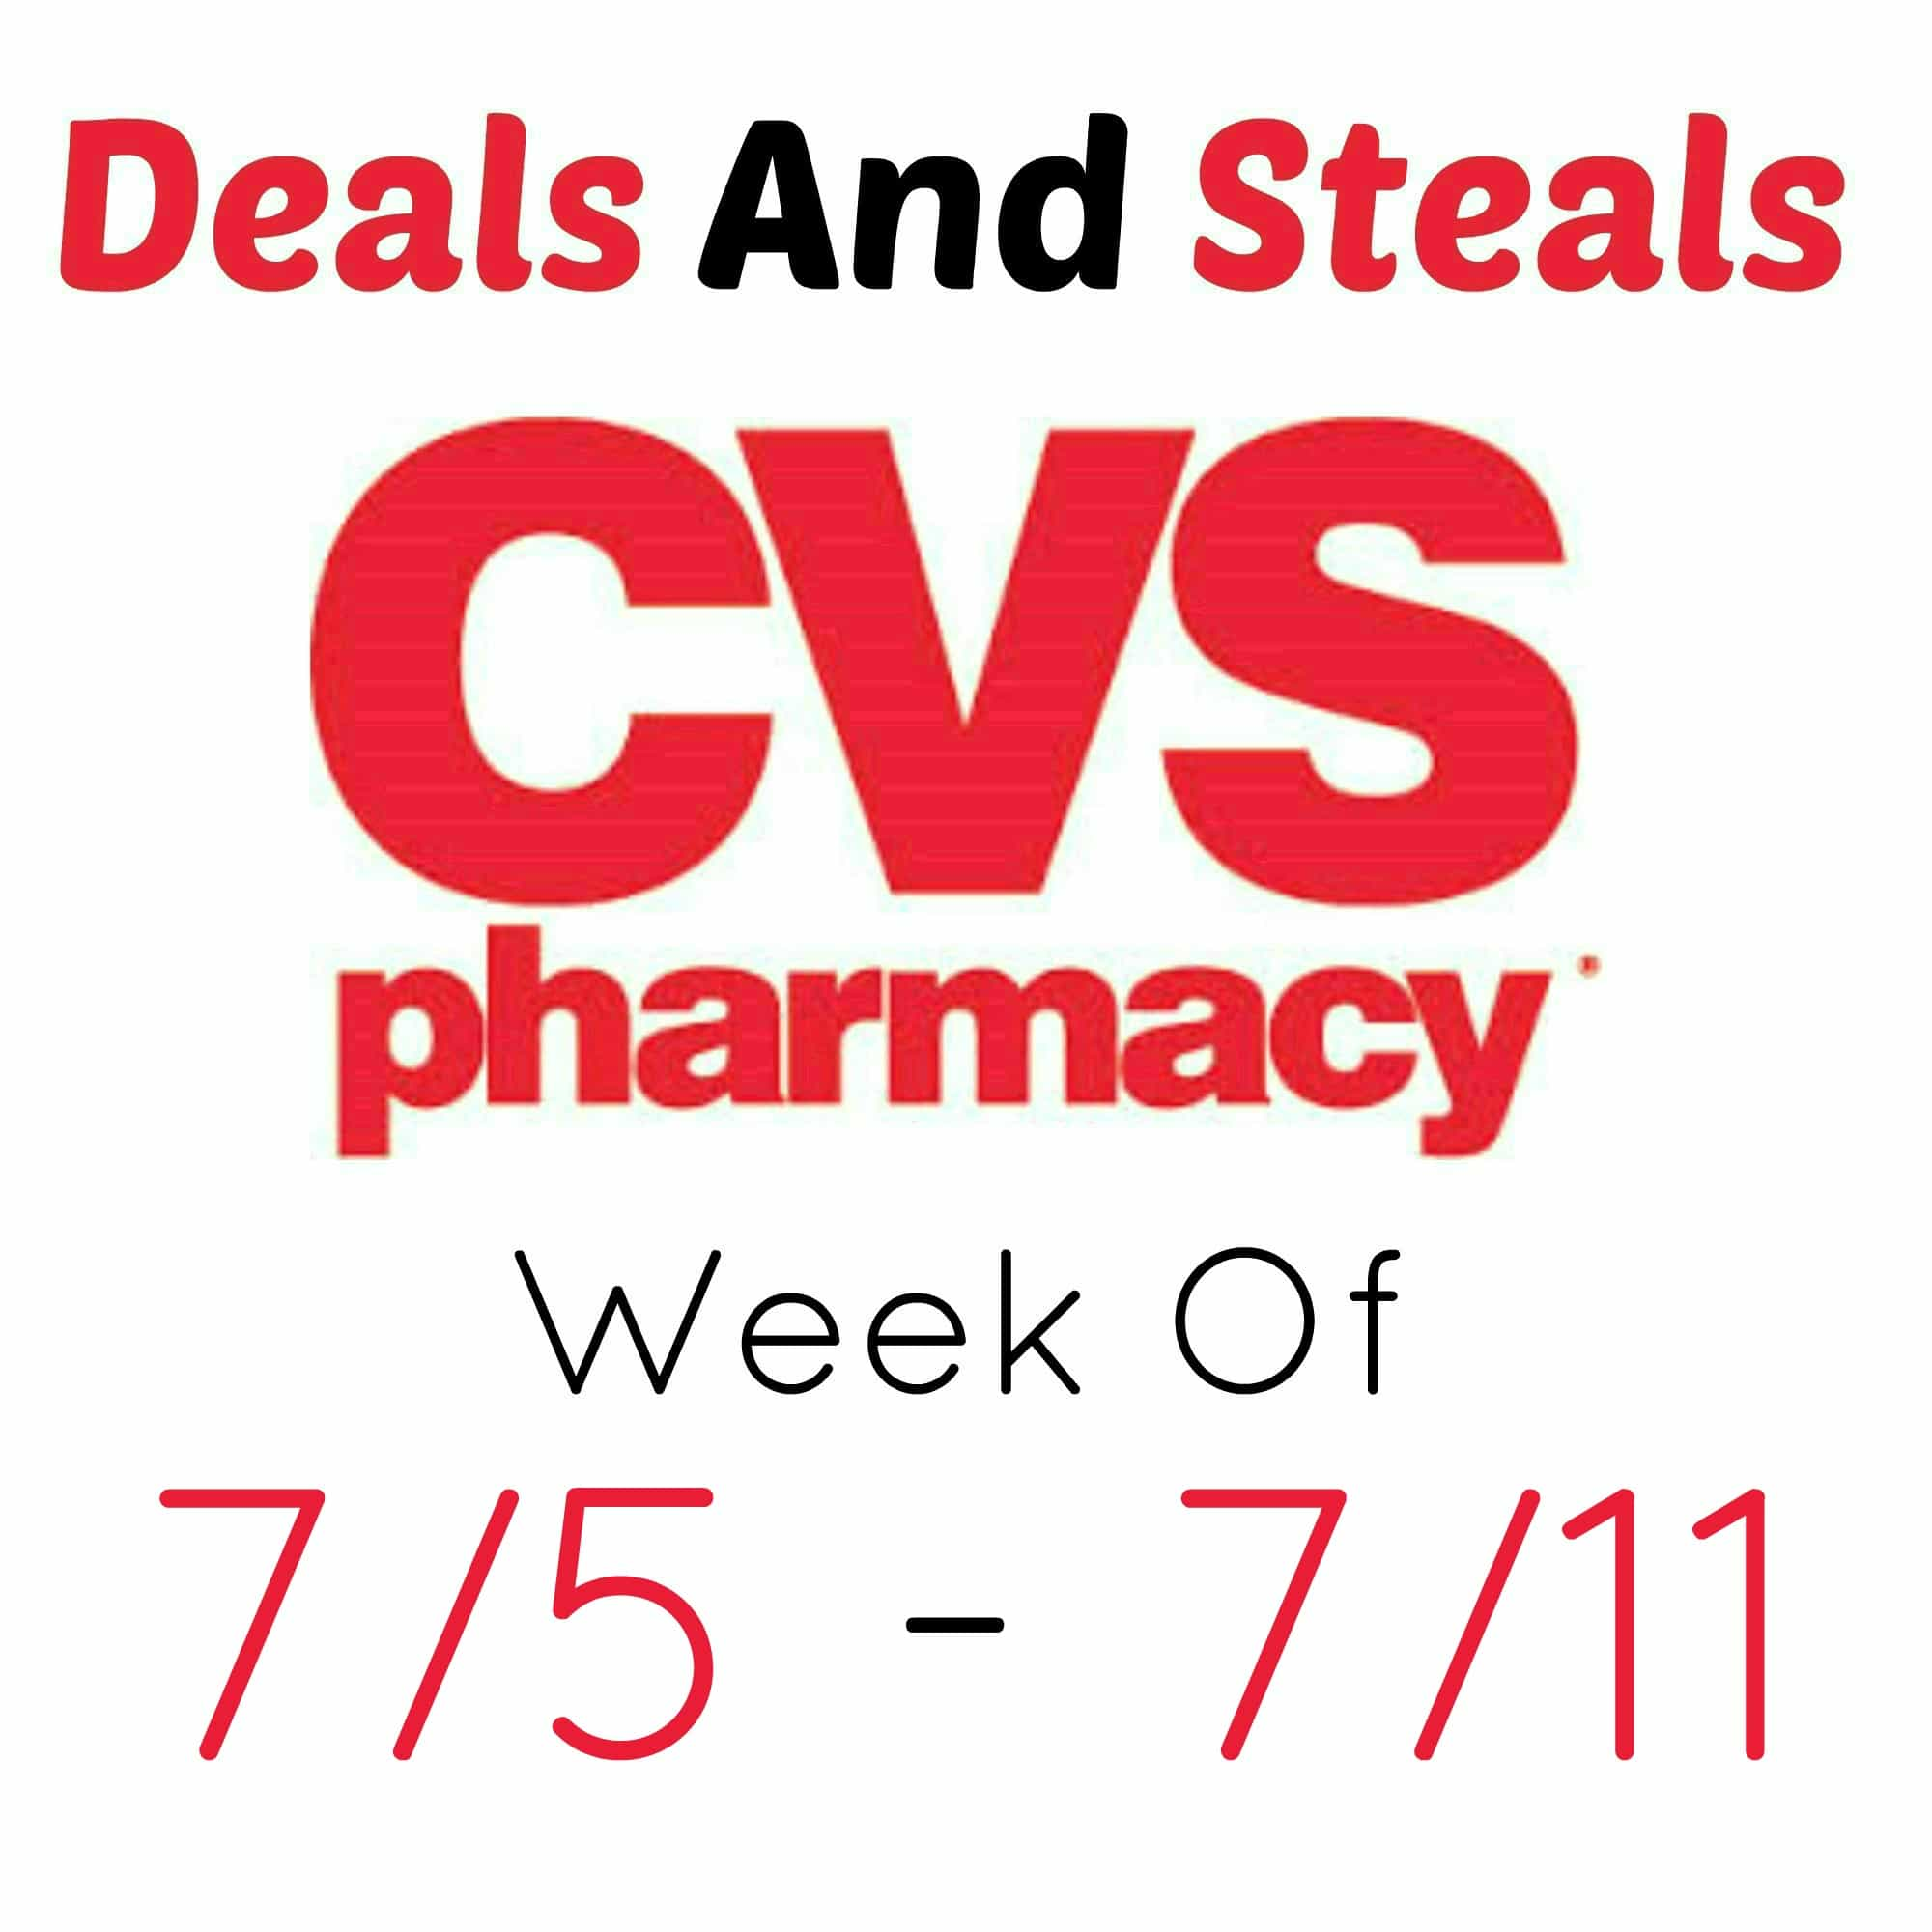 CVS Deals And Steals Week Of 7/5 - 7/11 - I Don't Have Time